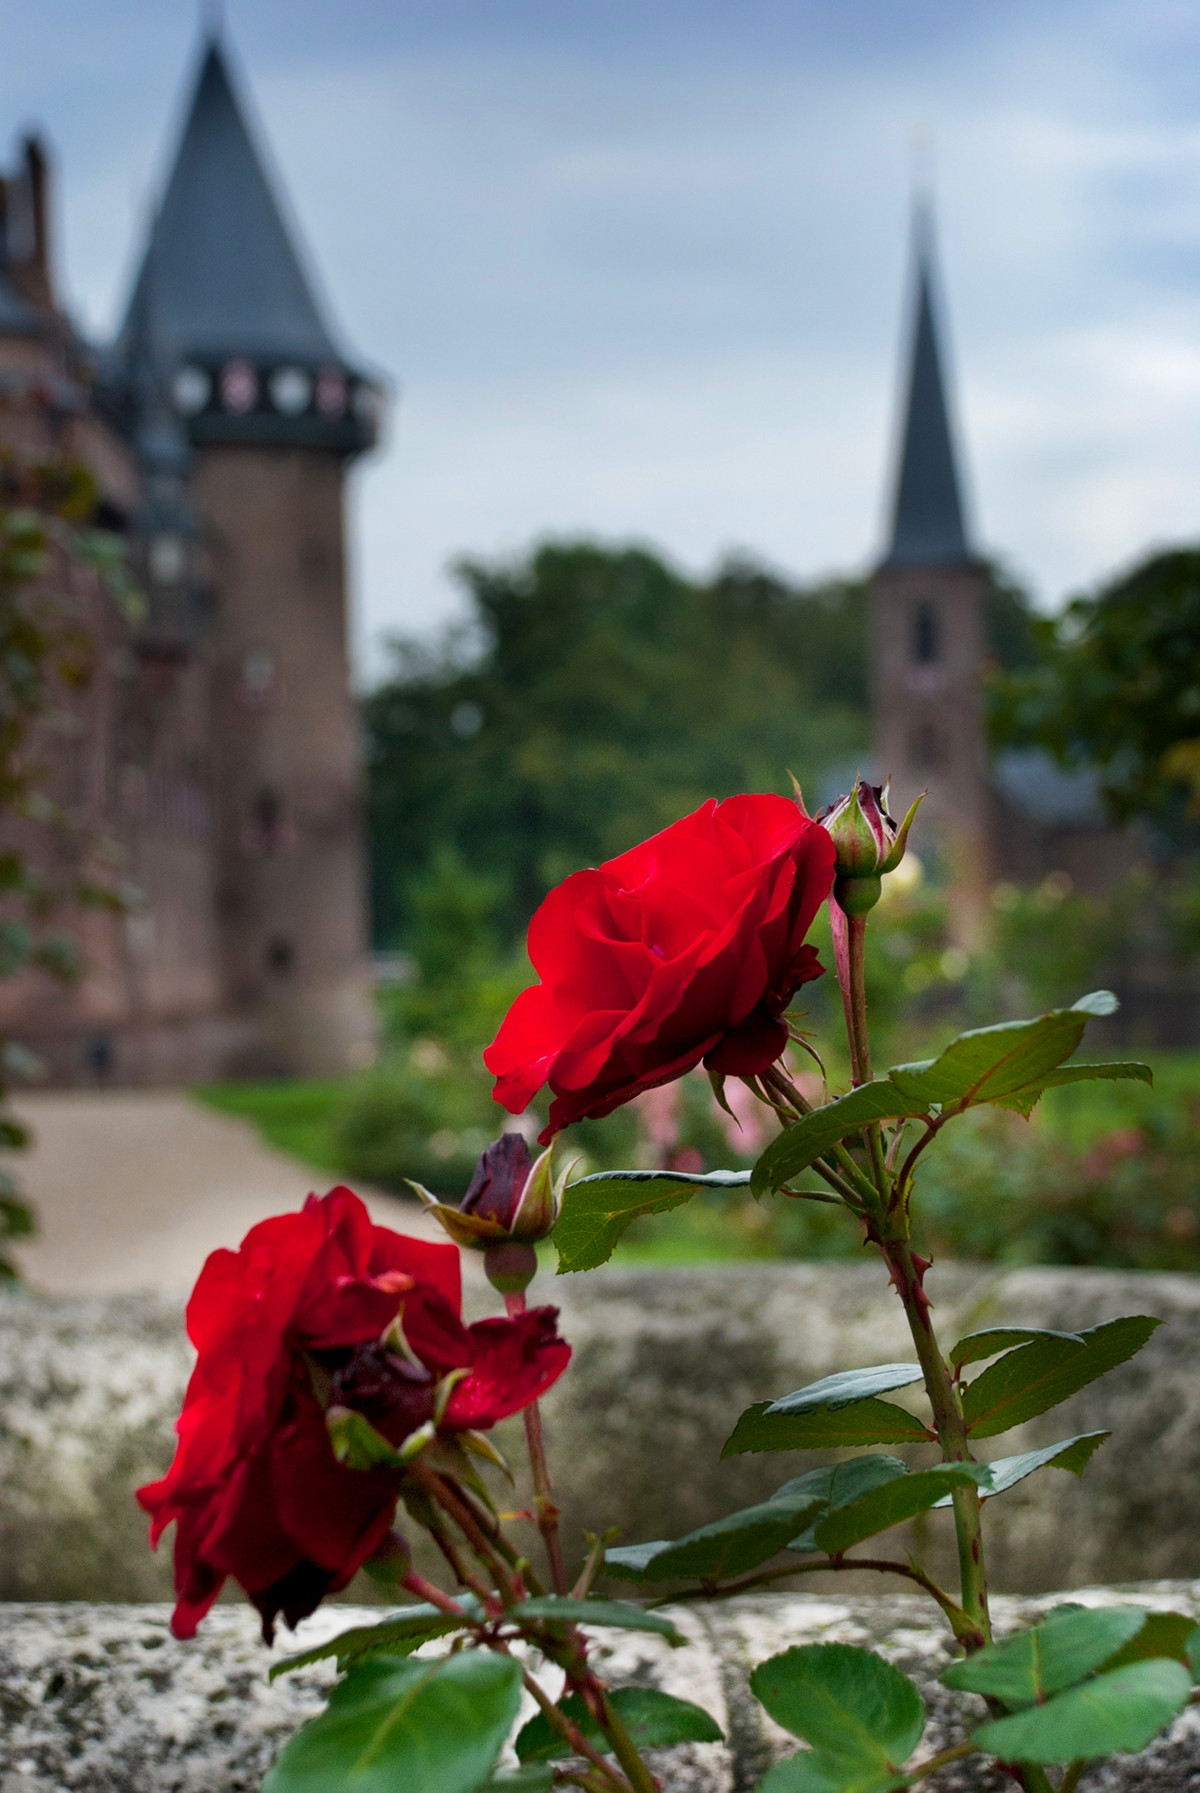 Rose garden at Castle de Haar. Credit Ewald Zomer